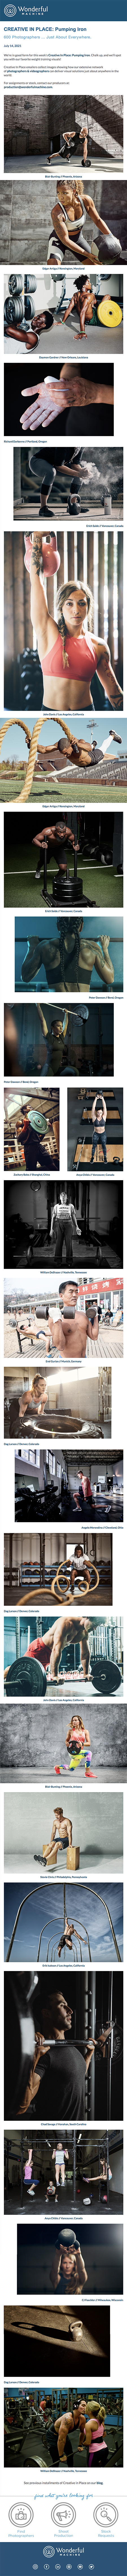 Wonderful Machine's July Creative In Place emailer campaign: Pumping Iron